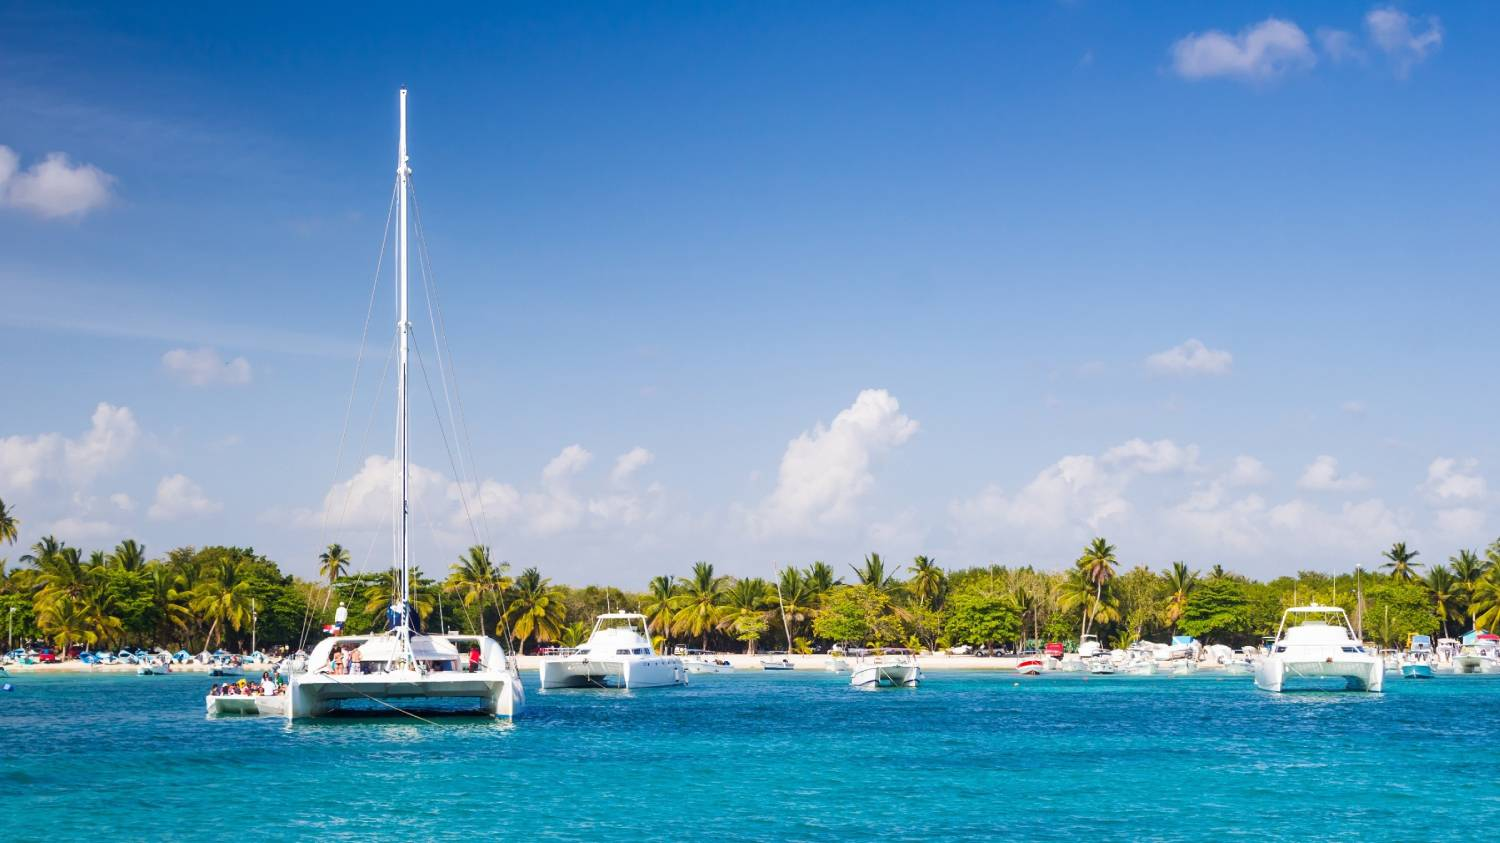 Bayahibe - The Best Places To Visit In The Dominican Republic